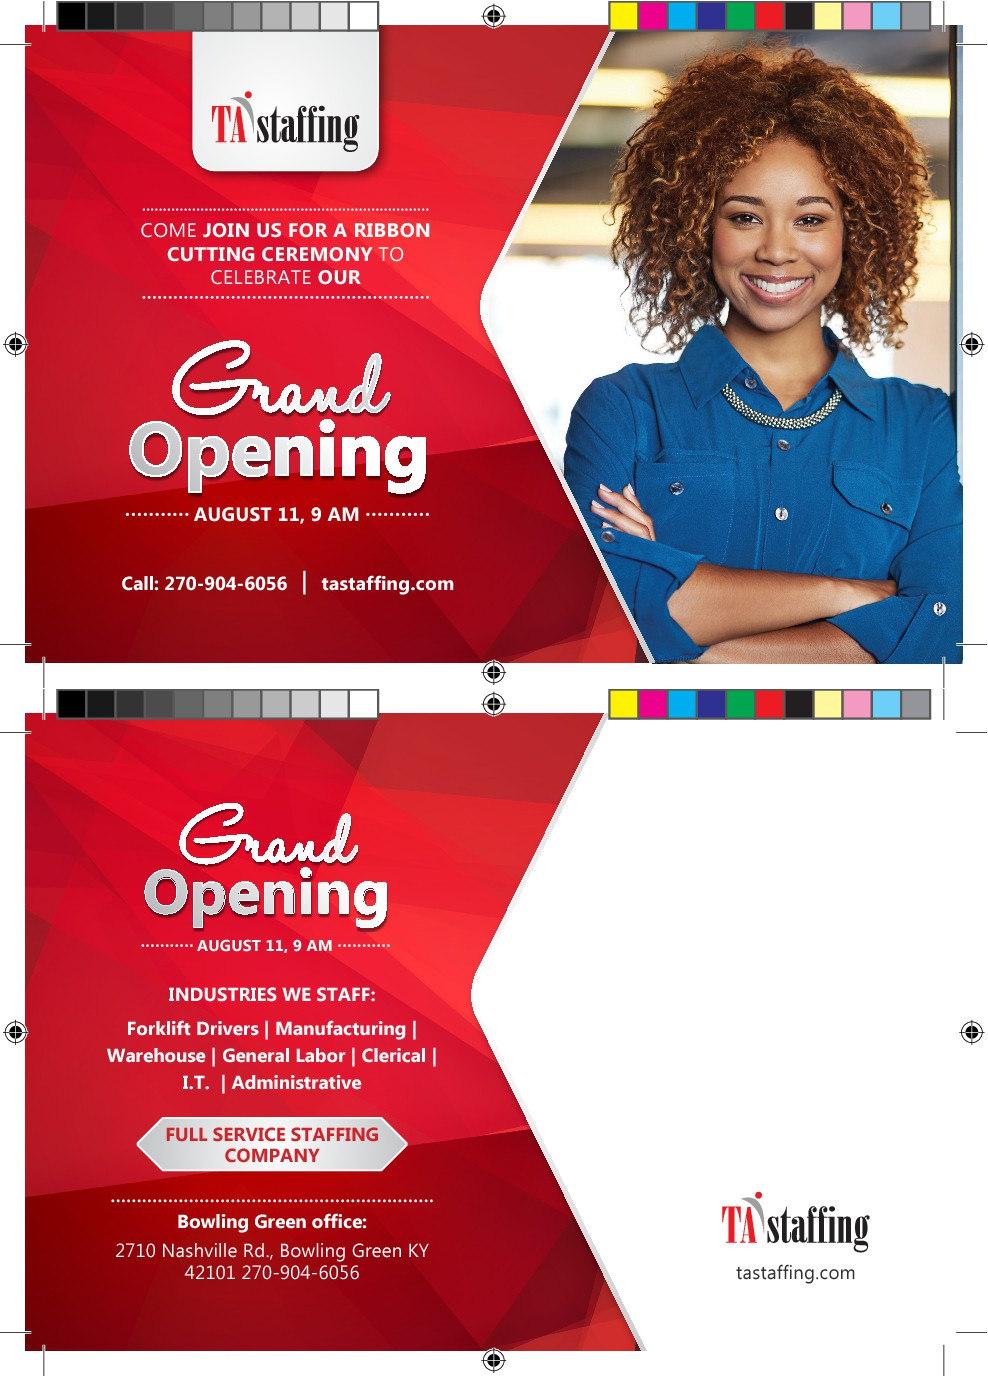 Design a layout for Full Color, 2 sided postcard for Grand Opening